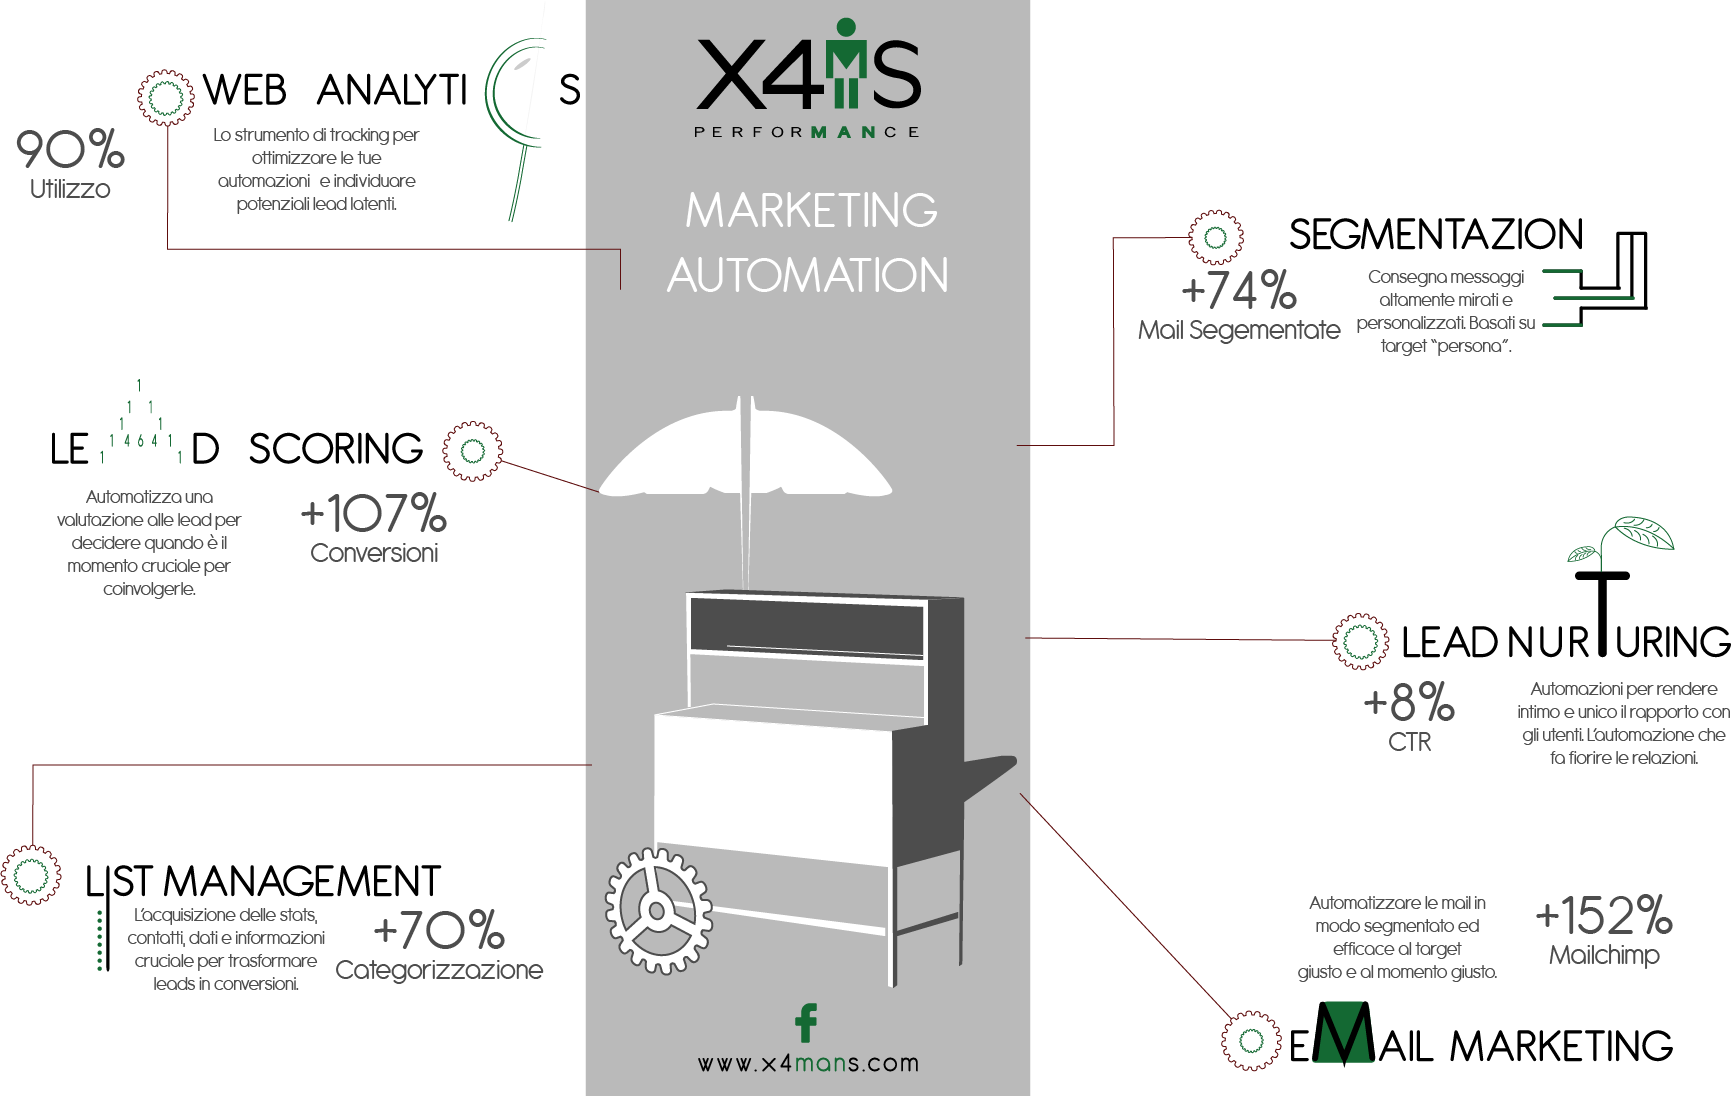 x4mans-marketing automation